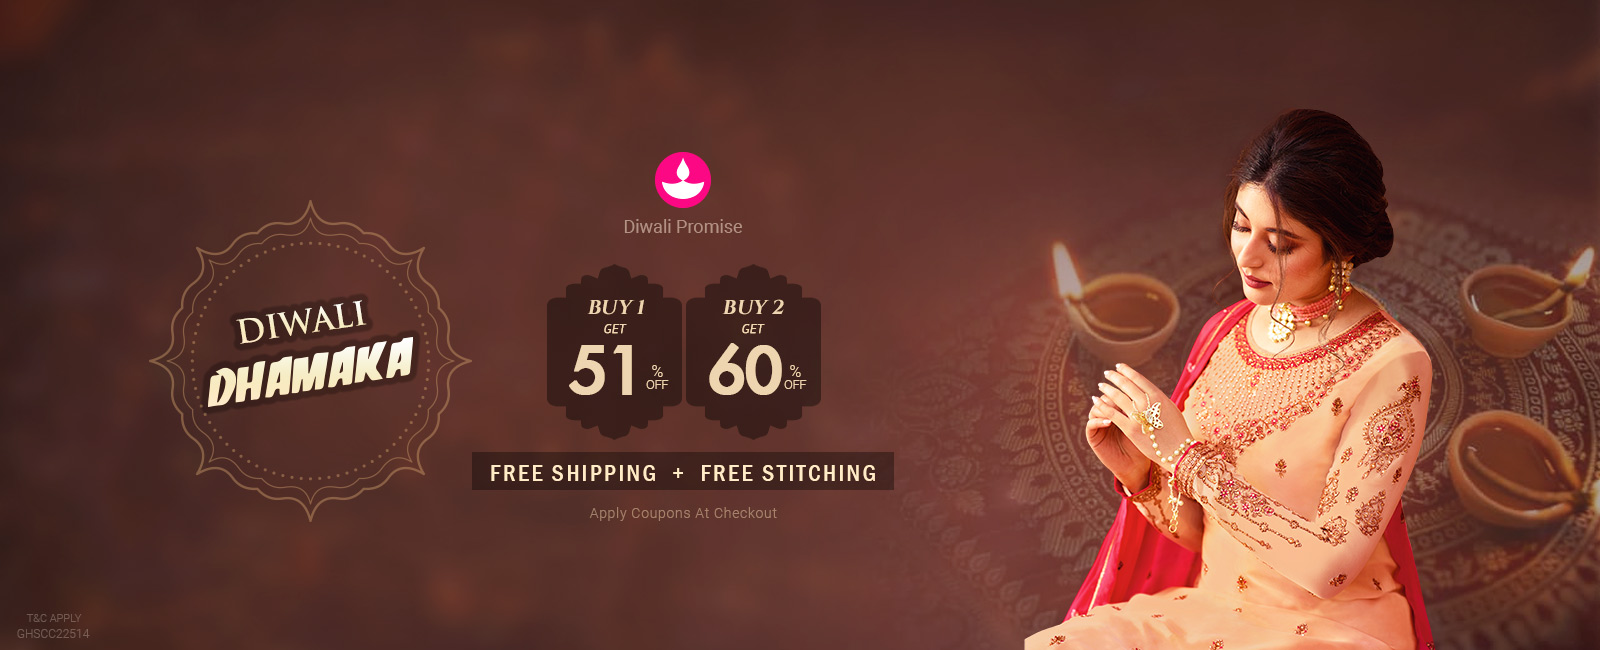 Buy 2 At 60 % off + Free Shipping +Free Stitching